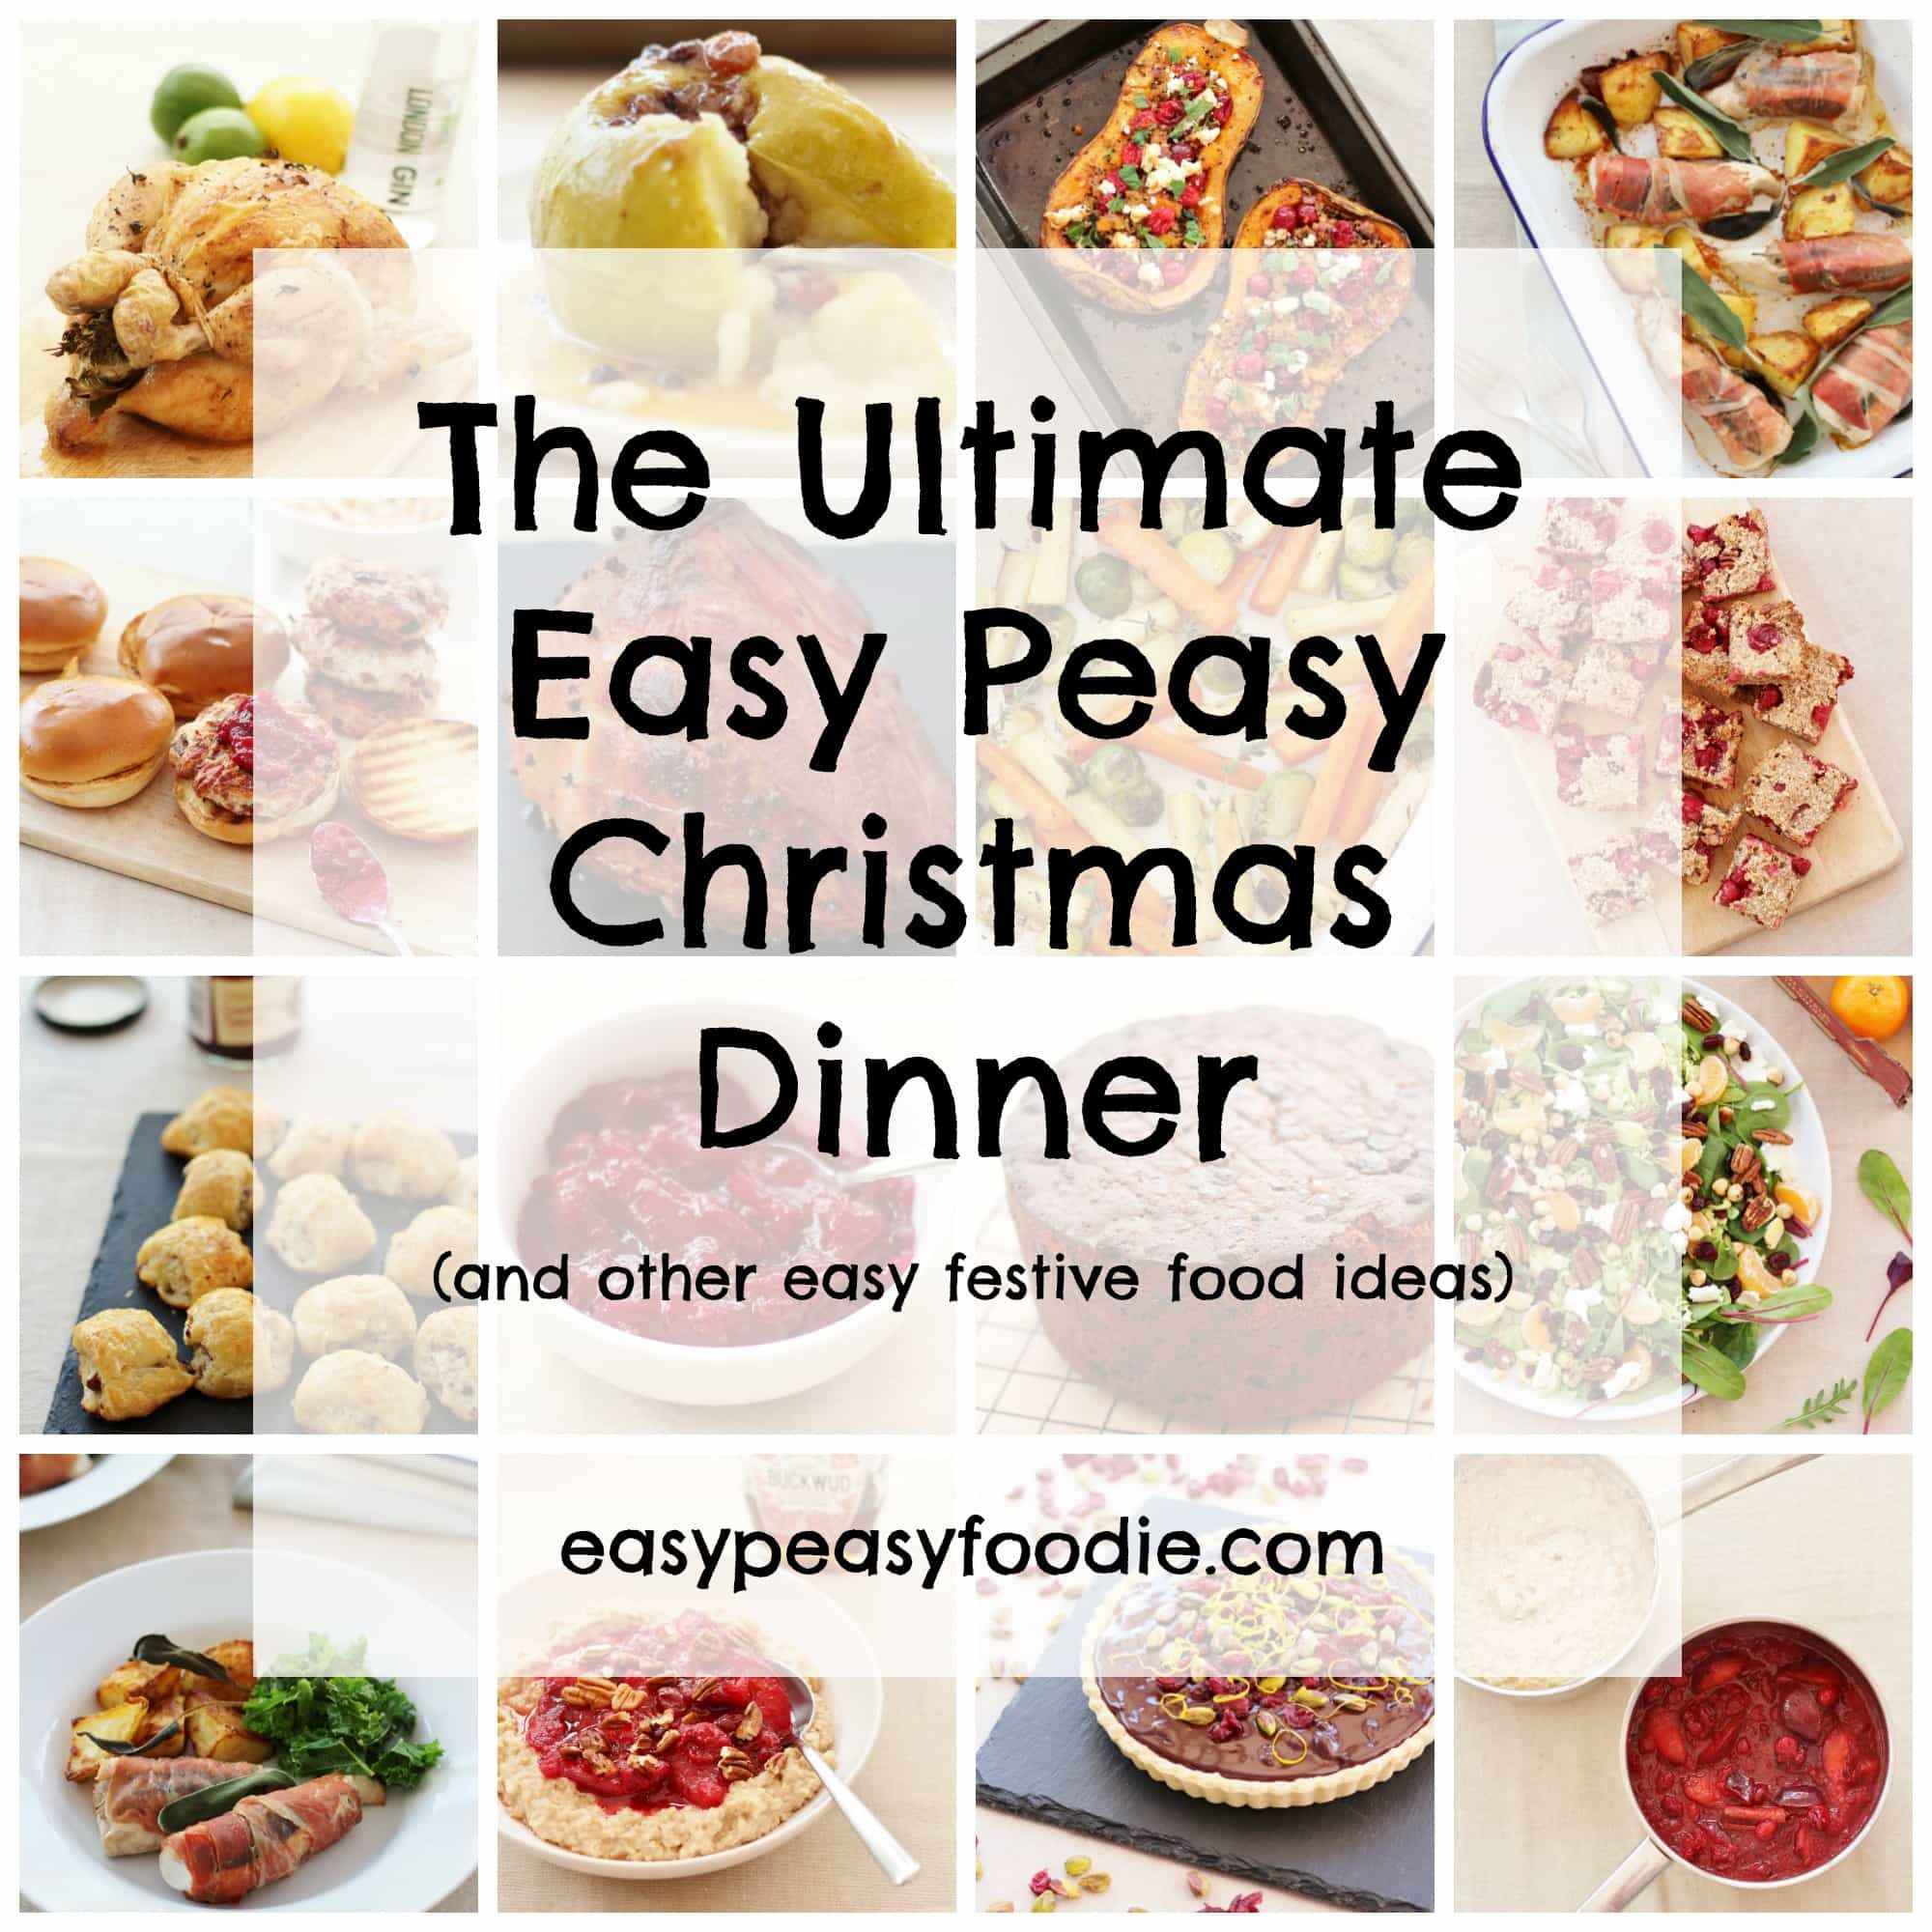 90+ Christmas Food Ideas For Family - 10 Kid Friendly Christmas Eve ...